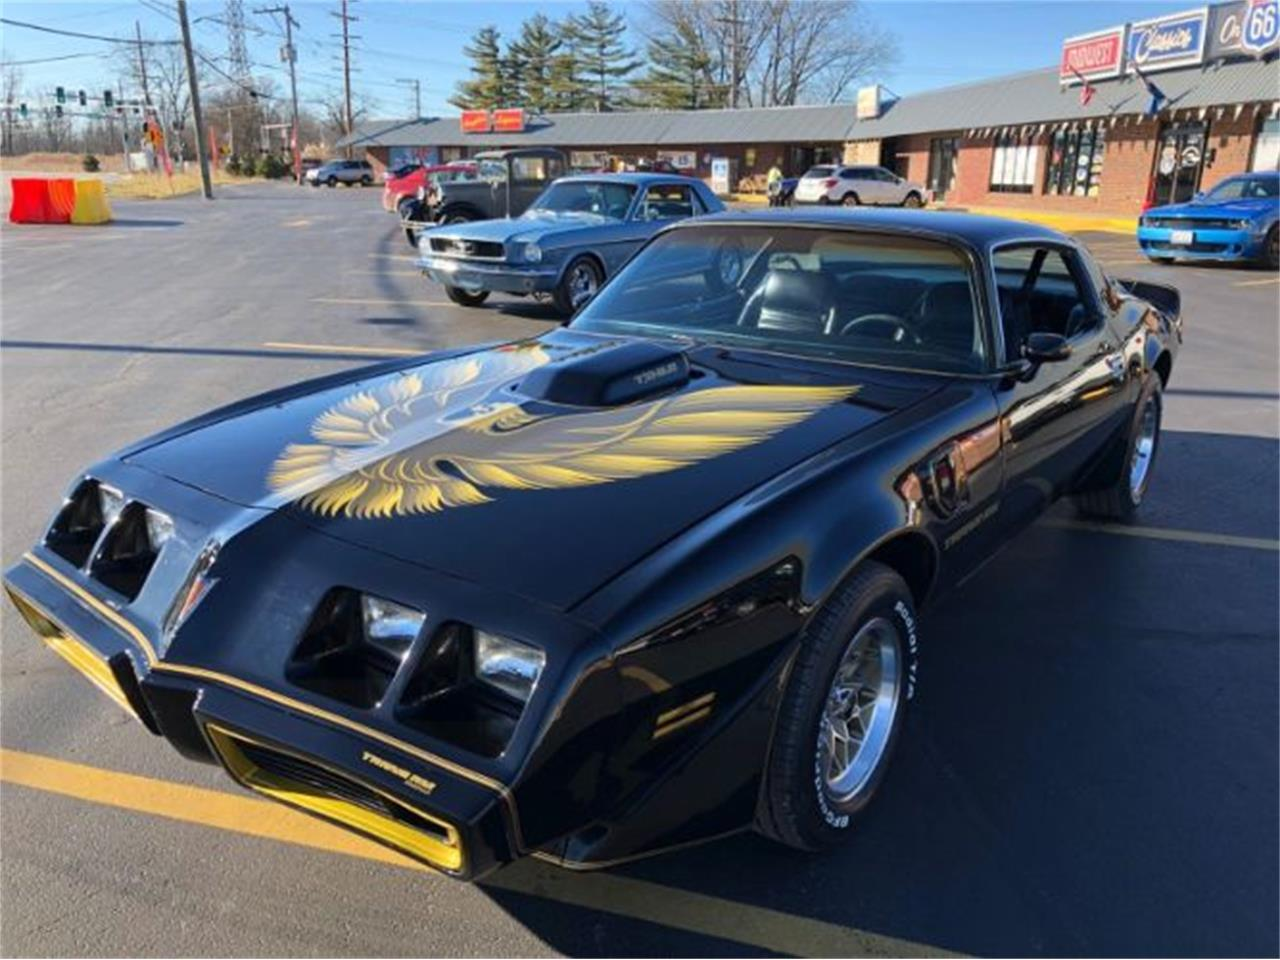 1979 Trans Am Picture For Sale 1979 Pontiac Firebird Trans Am In Cadillac Michigan